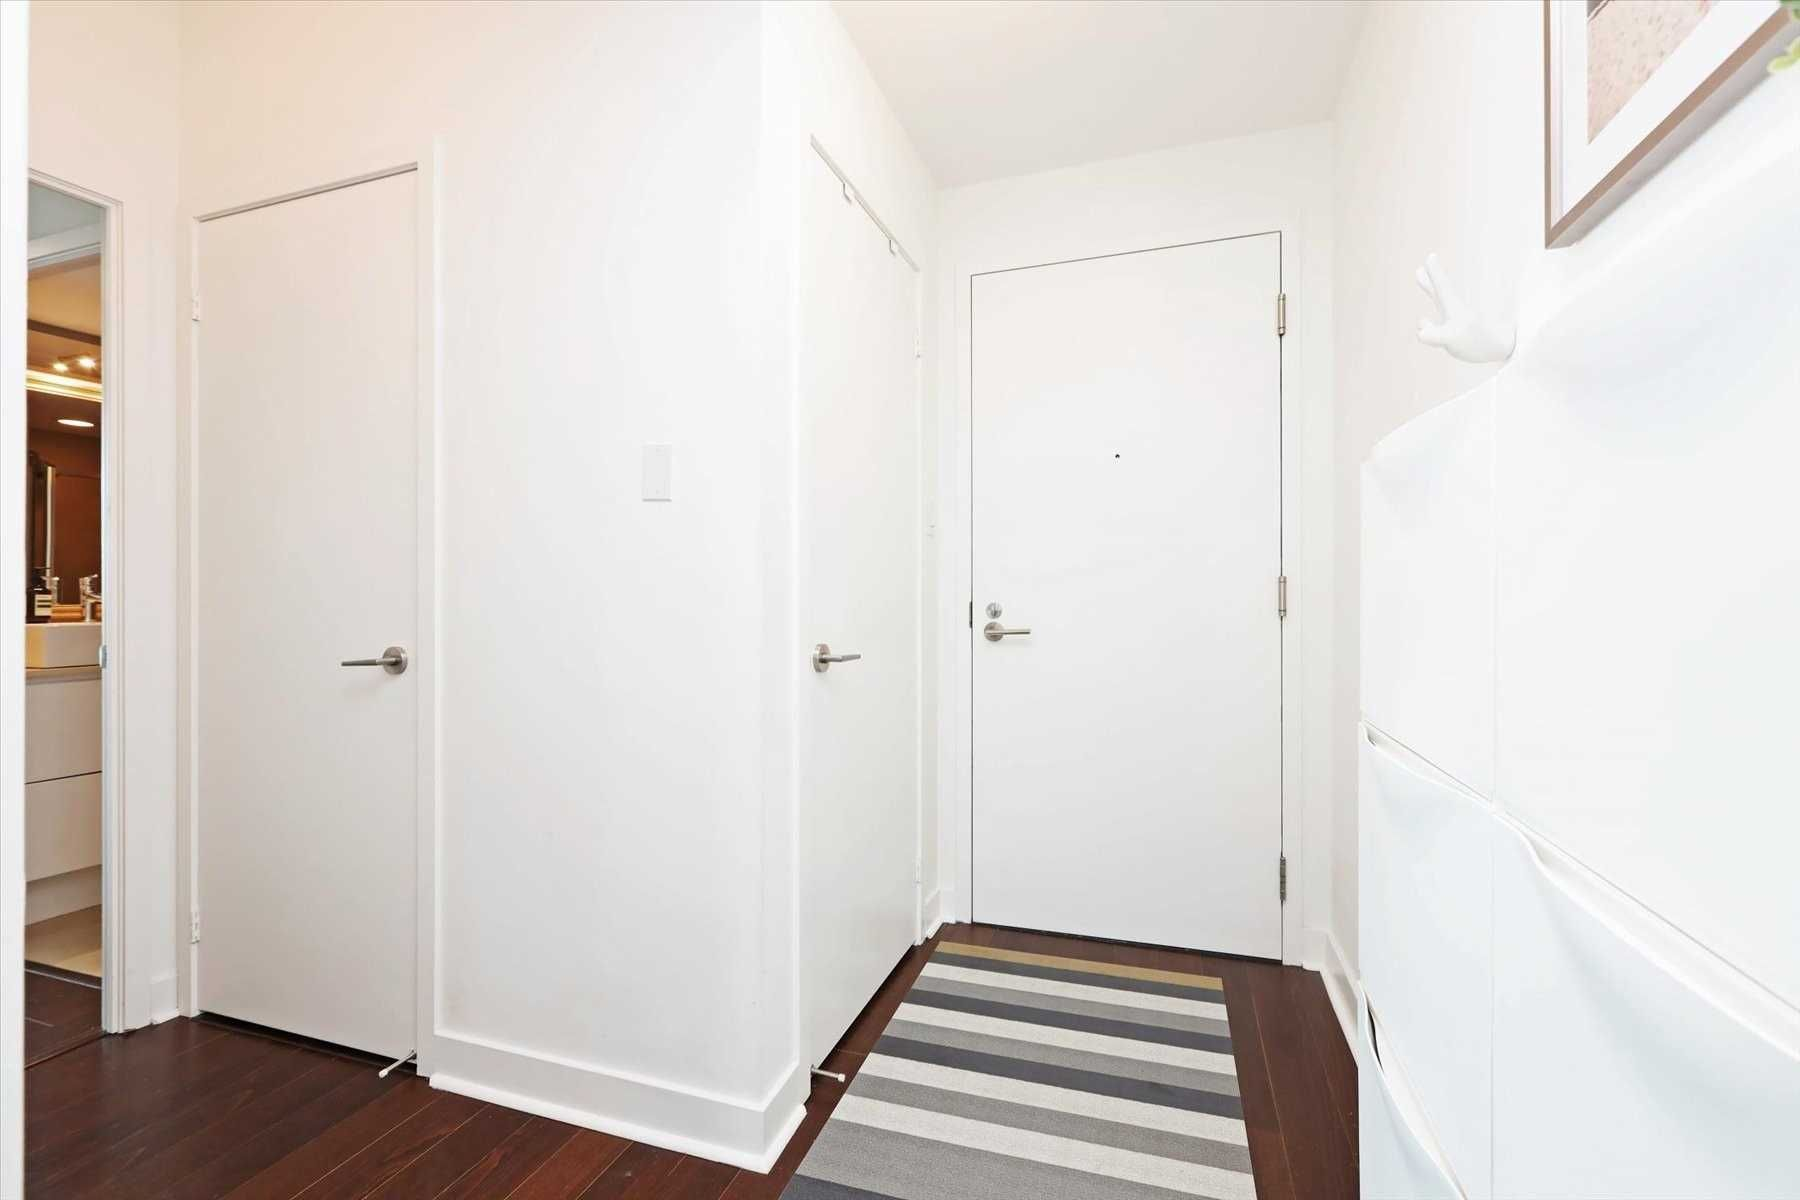 1171 Queen St W, unit 1009 for sale in Toronto - image #2